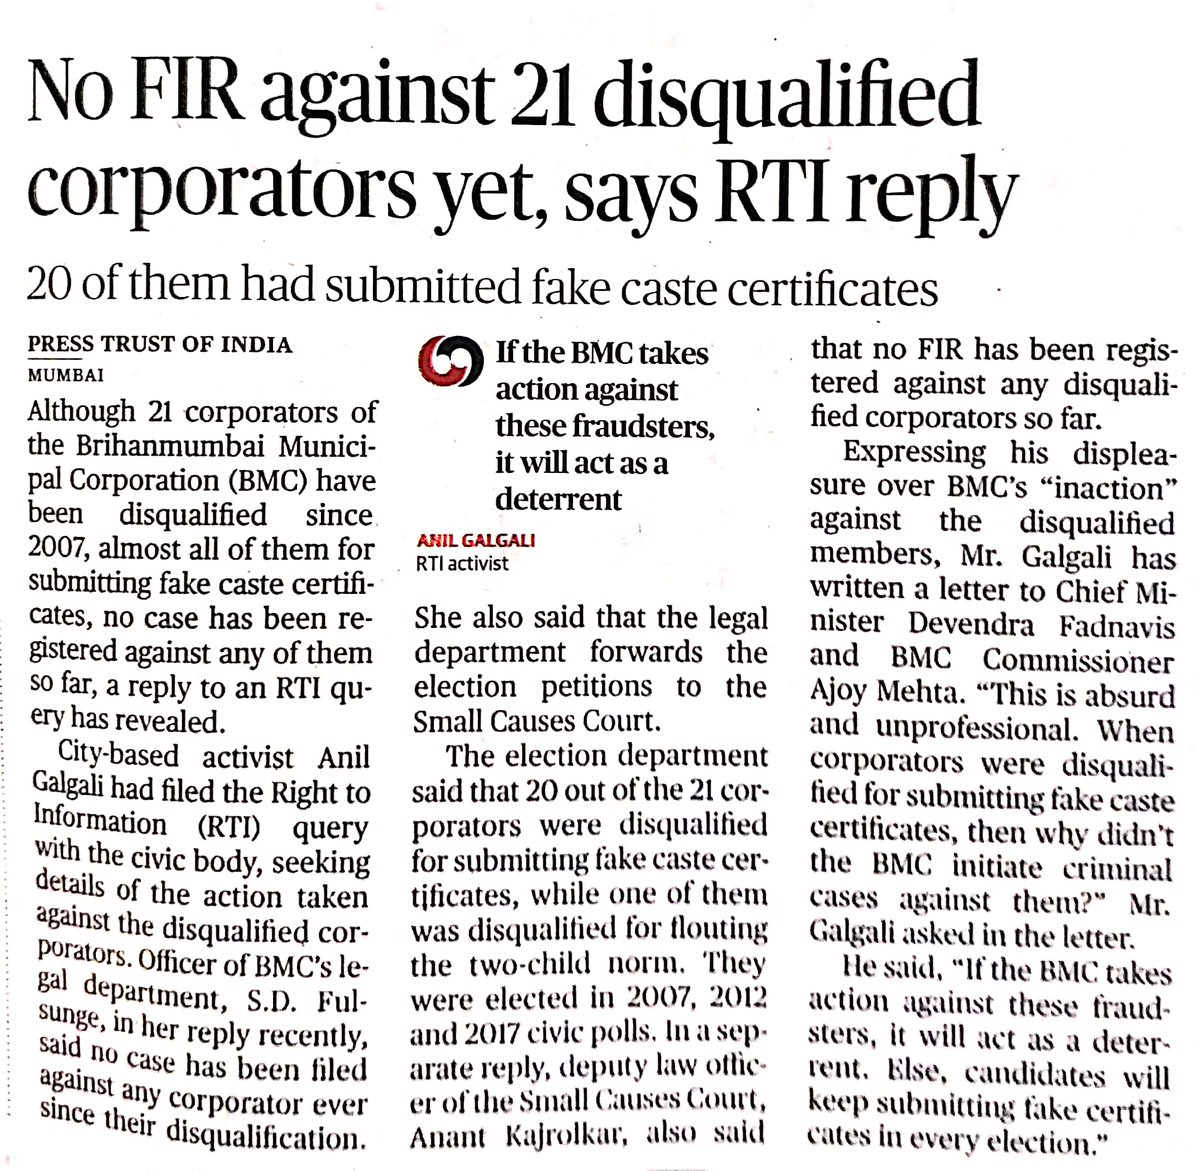 The Hindu- No FIR against 21 disqualified corporators yetm